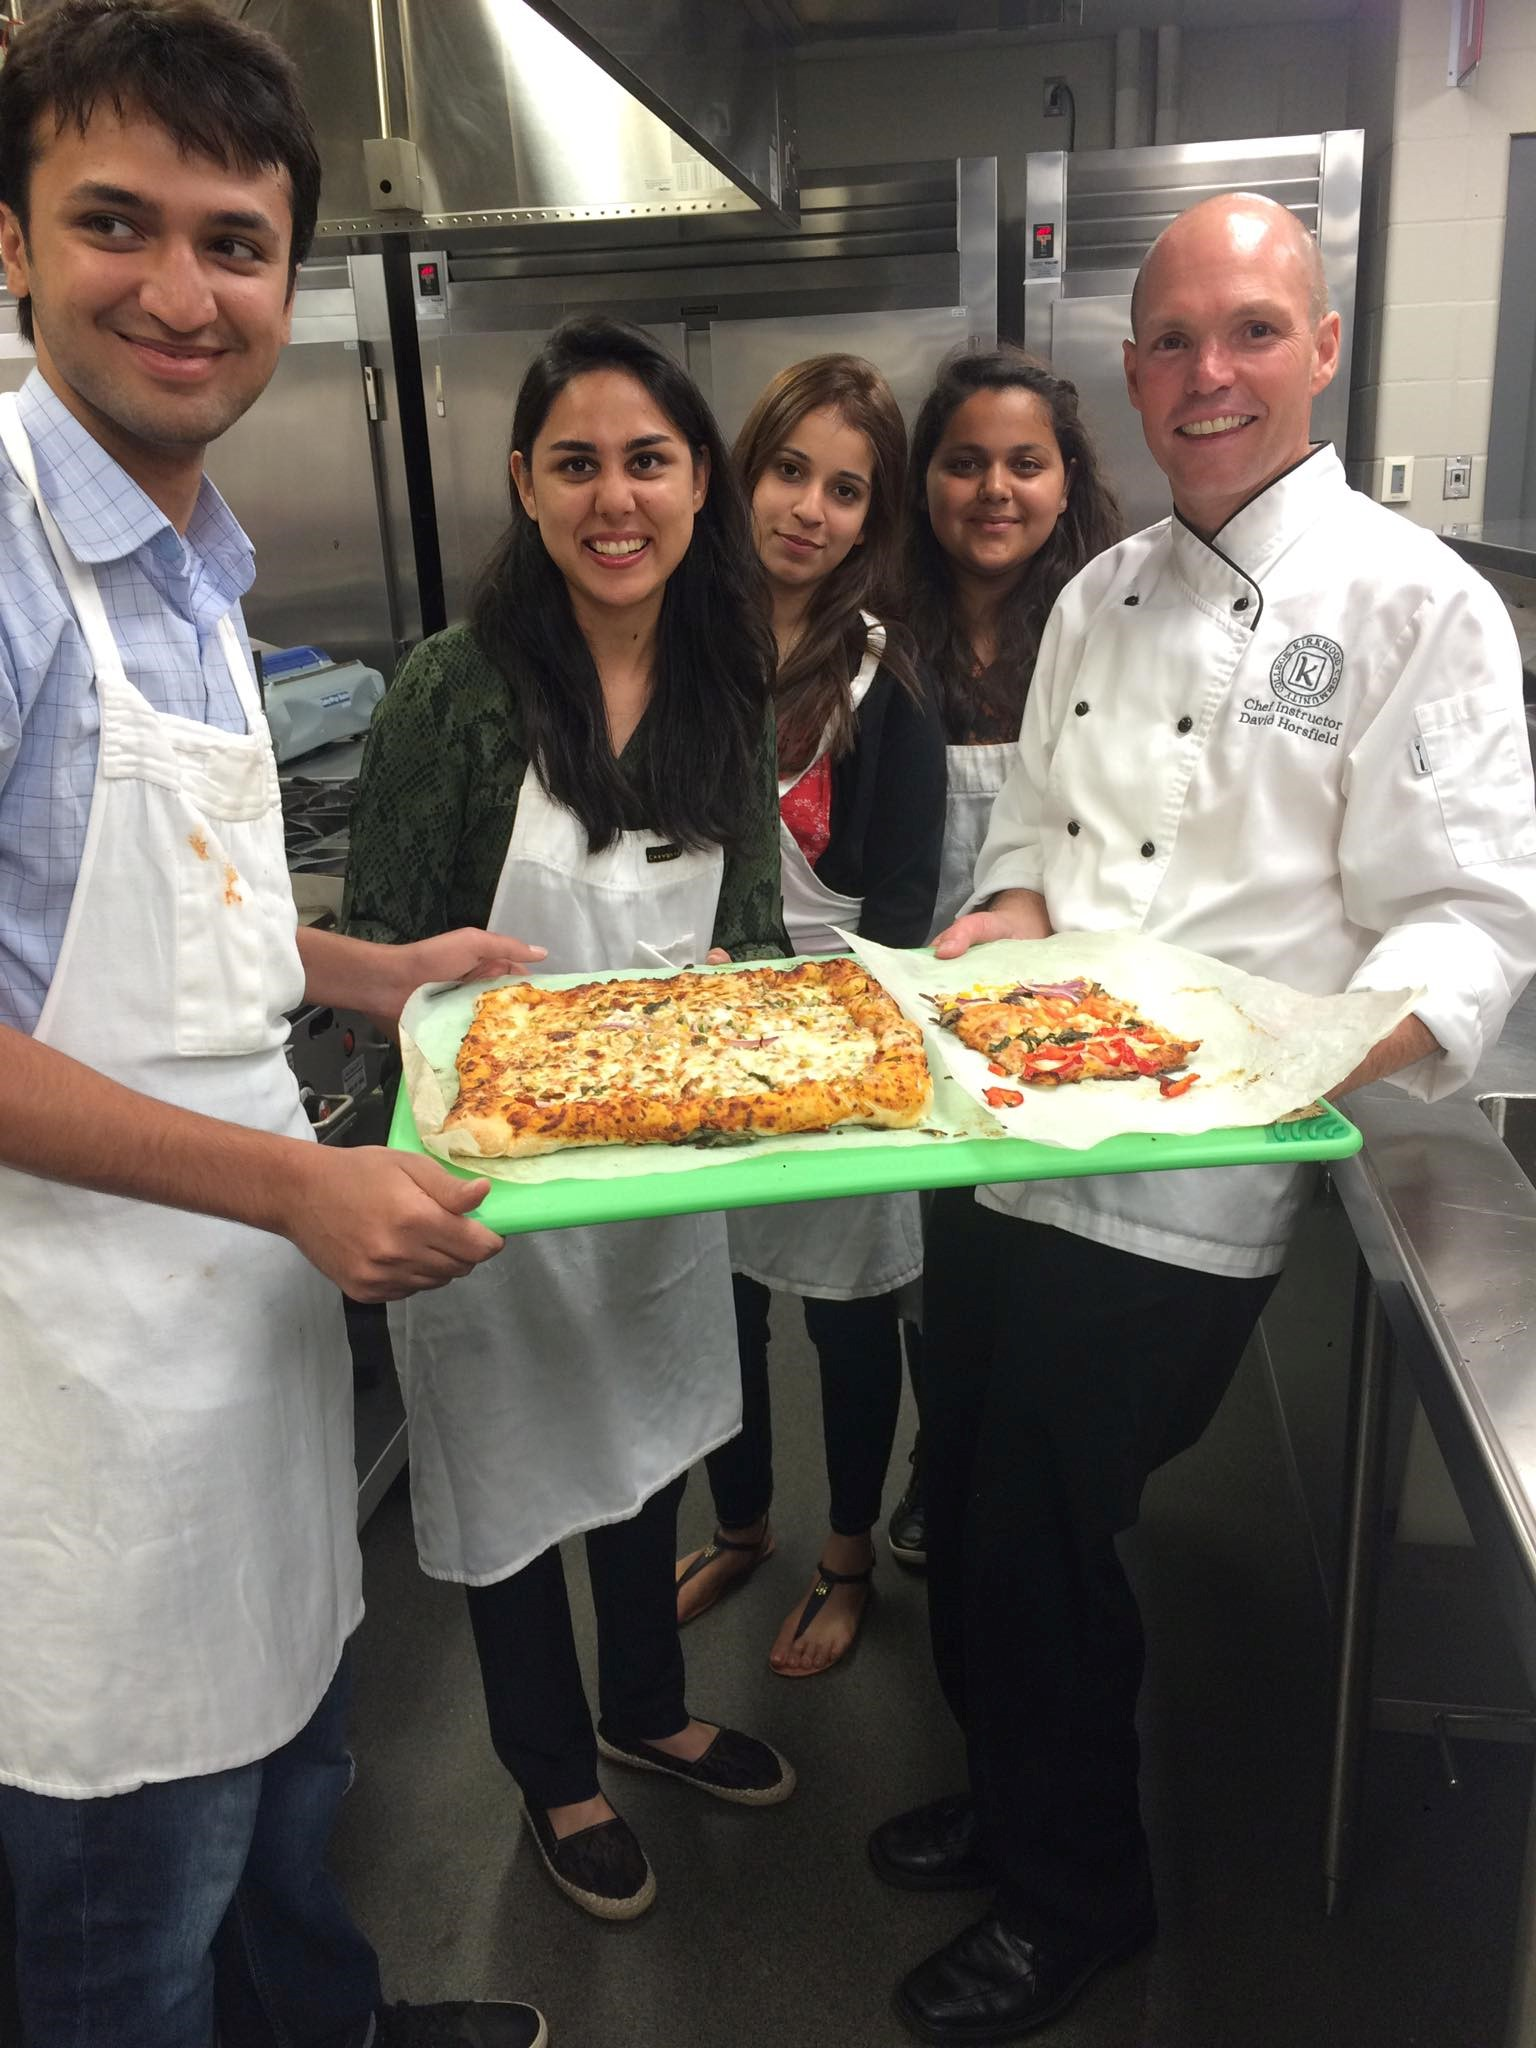 Pizza or flatbread, anyone? Students had the opportunity to bake their own pizza at the Kirkwood Community College in Cedar Rapids, Iowa.